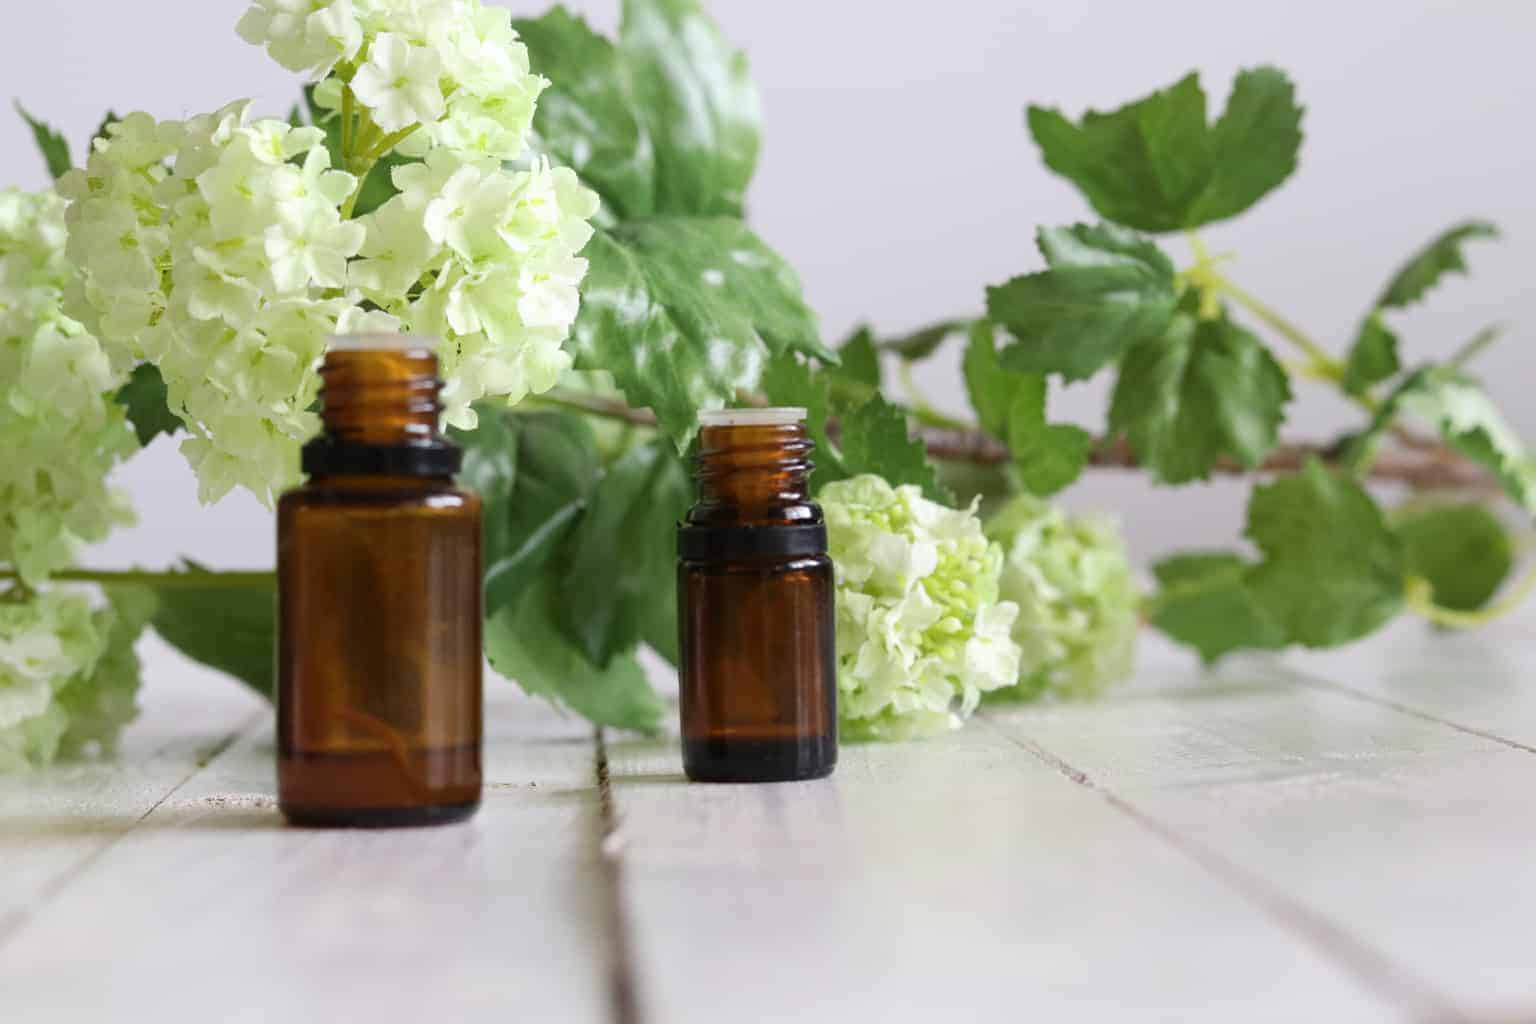 Essential oil bottles with fresh flowers in background.